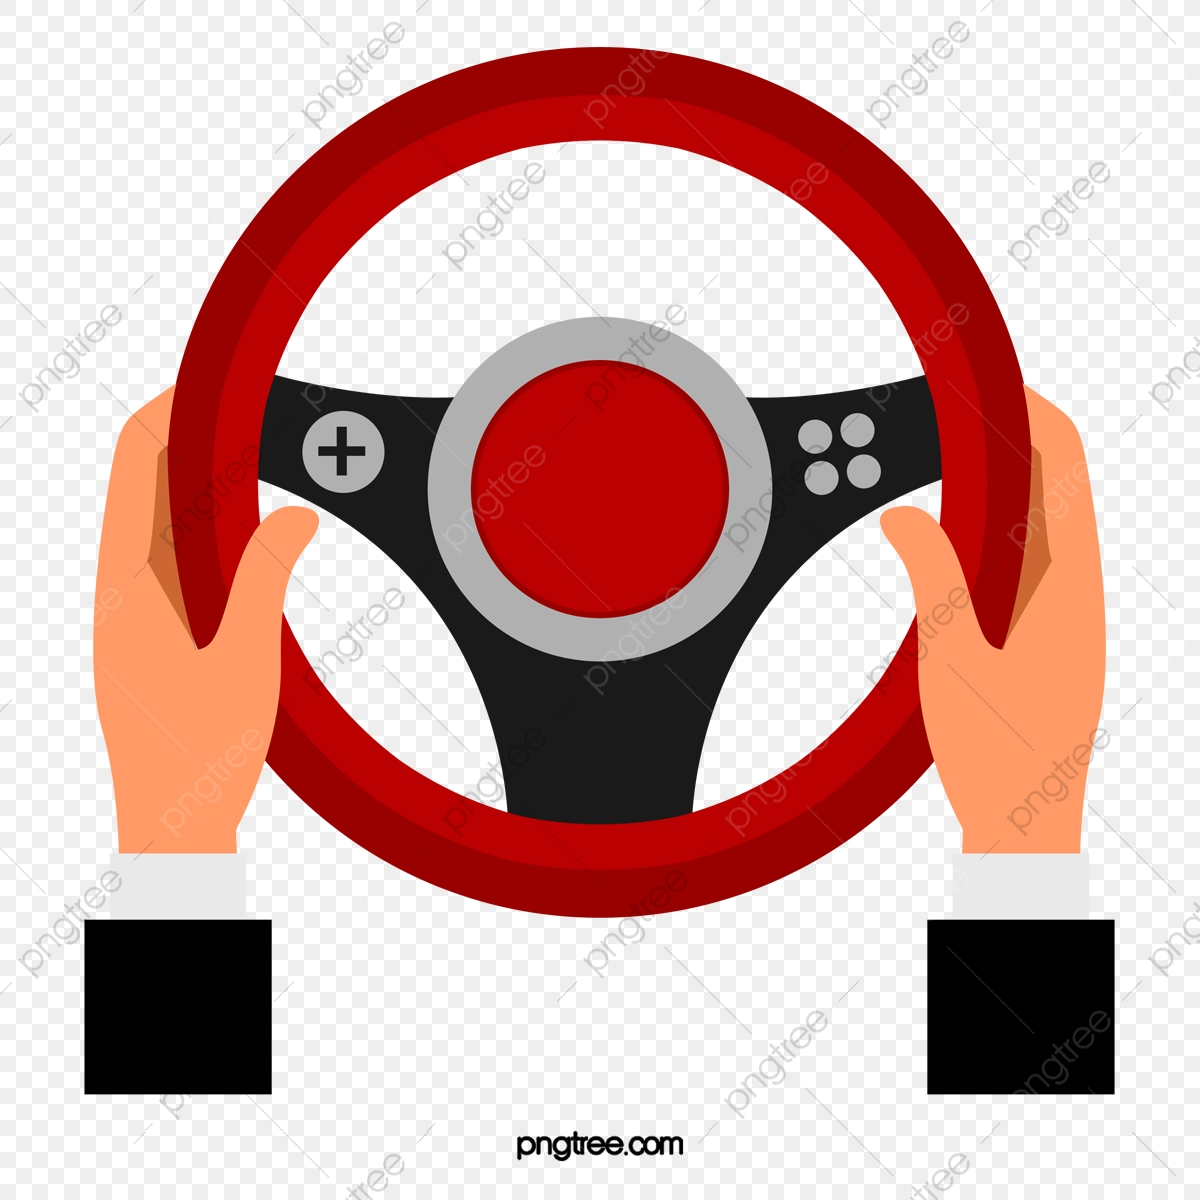 steering wheel png images vector and psd files free download on pngtree https pngtree com freepng hand steering wheel 641649 html